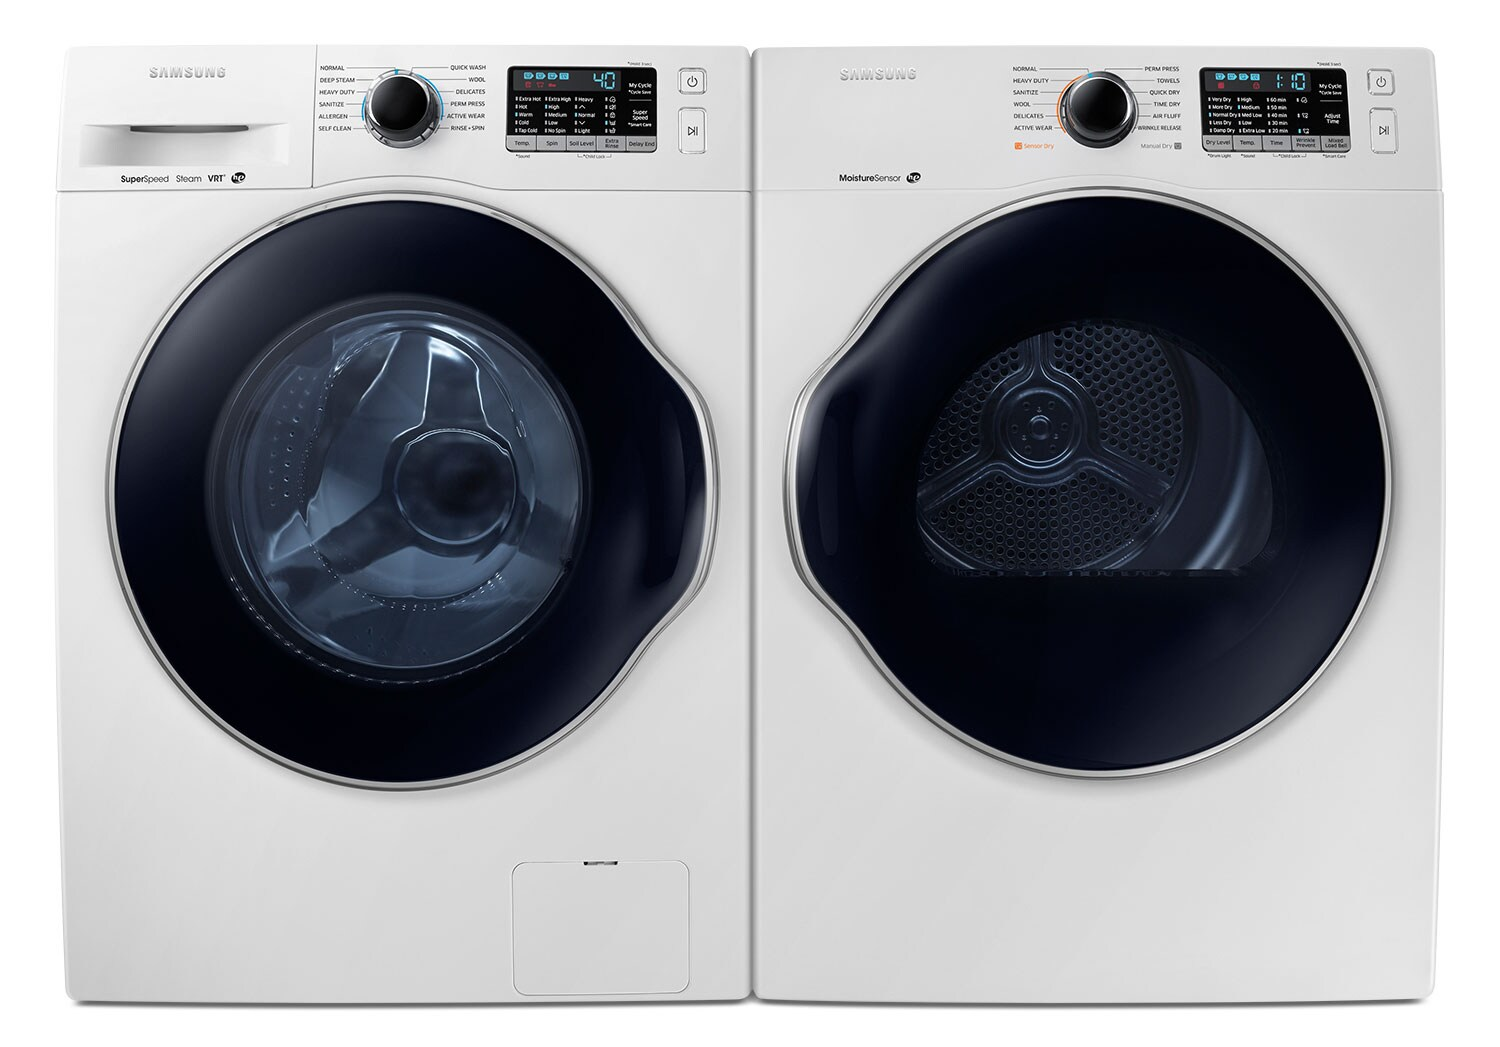 Samsung Compact 2.6 Cu. Ft. Front-Load Washer and 4.0 Cu. Ft. Electric Dryer – White